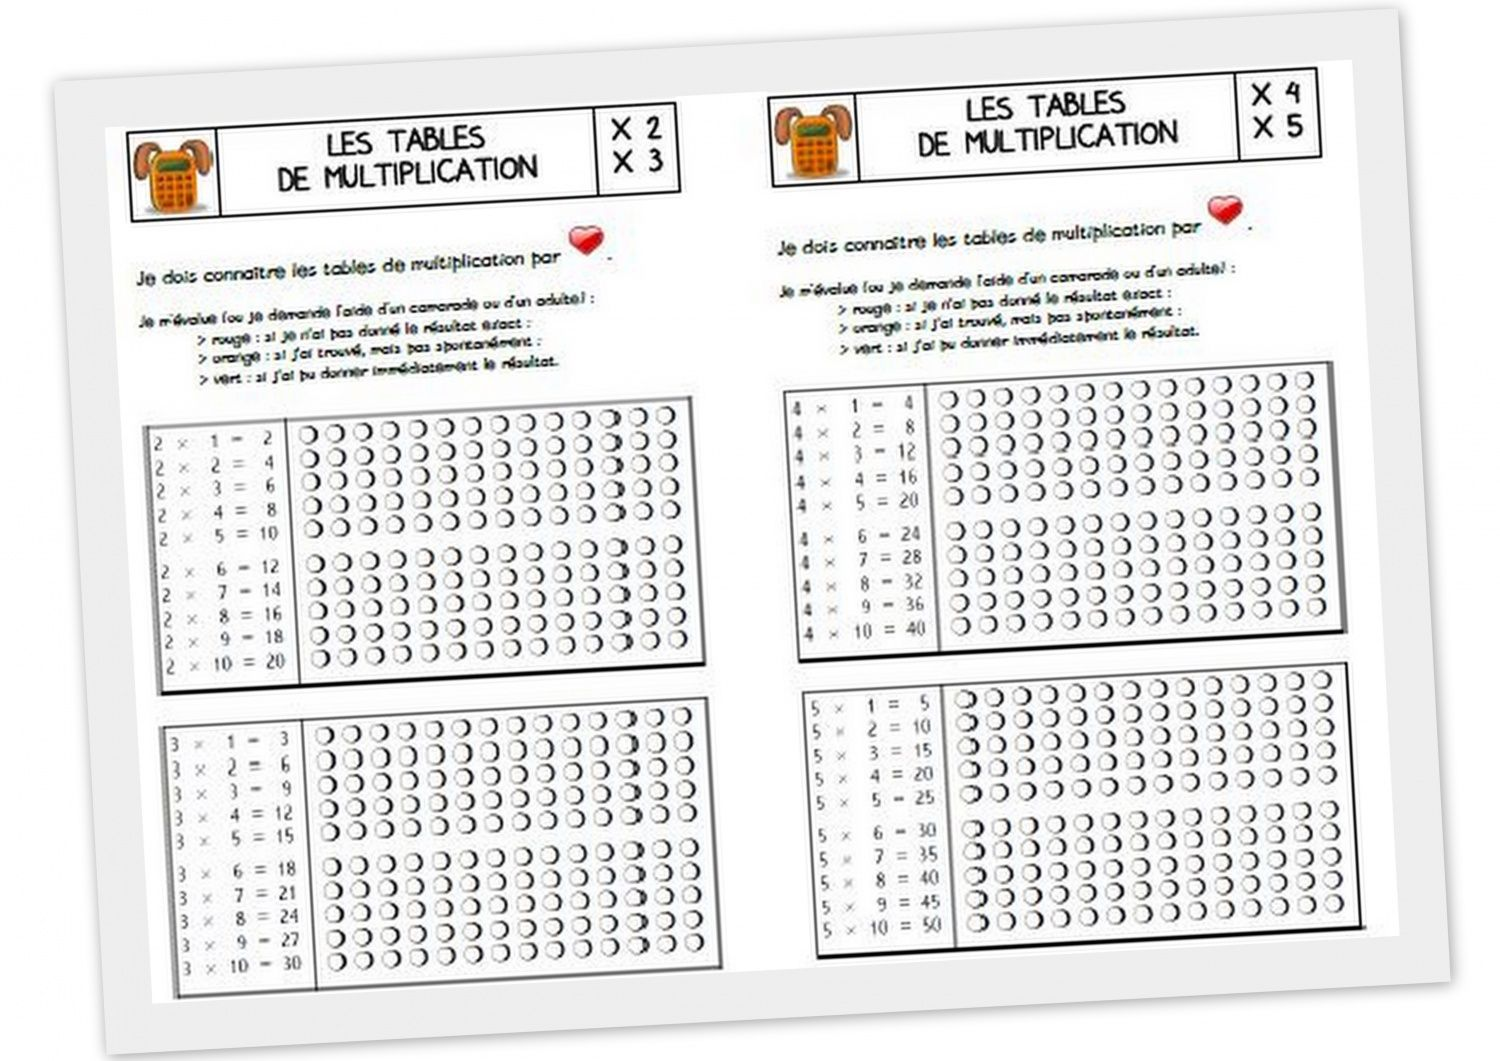 Les tables de multiplication cycle 3 contenus - Table d addition a completer ...